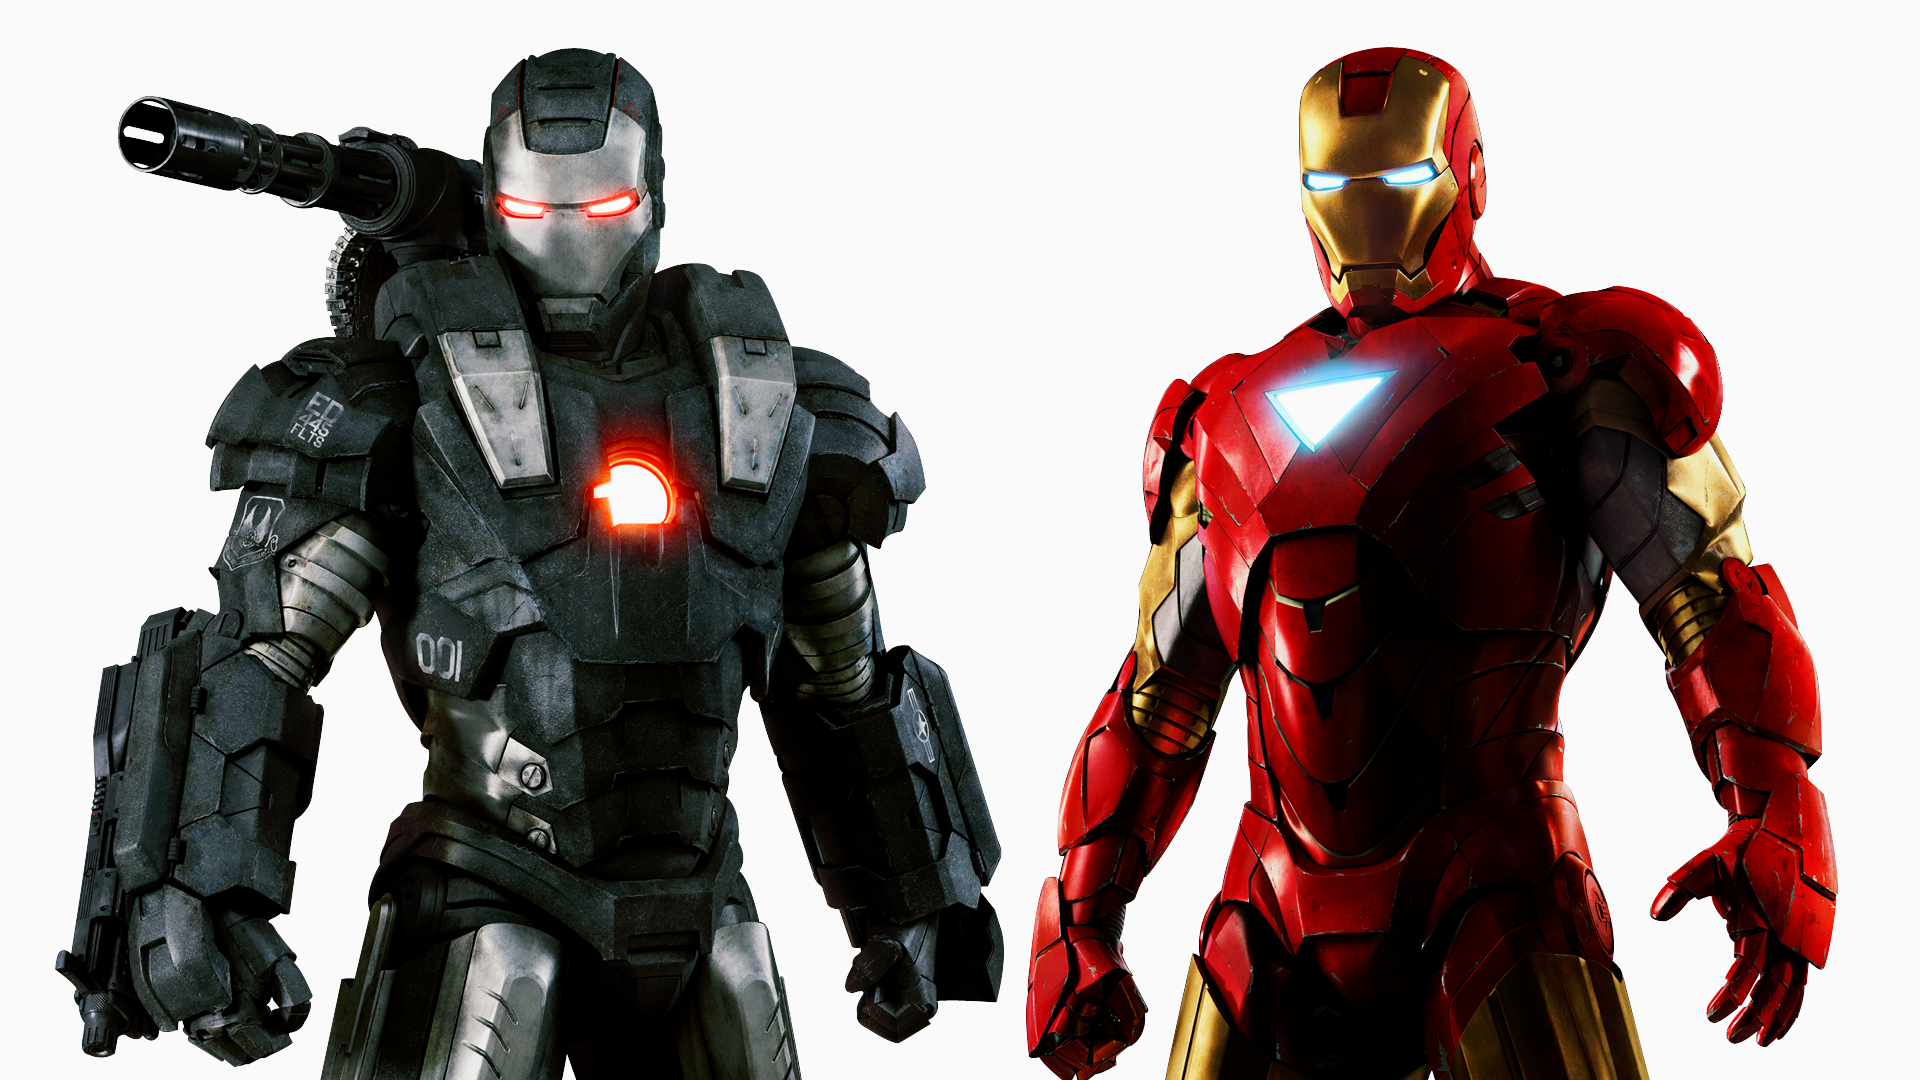 War Machine Iron Man 2 Free Wallpaper WallpaperJam